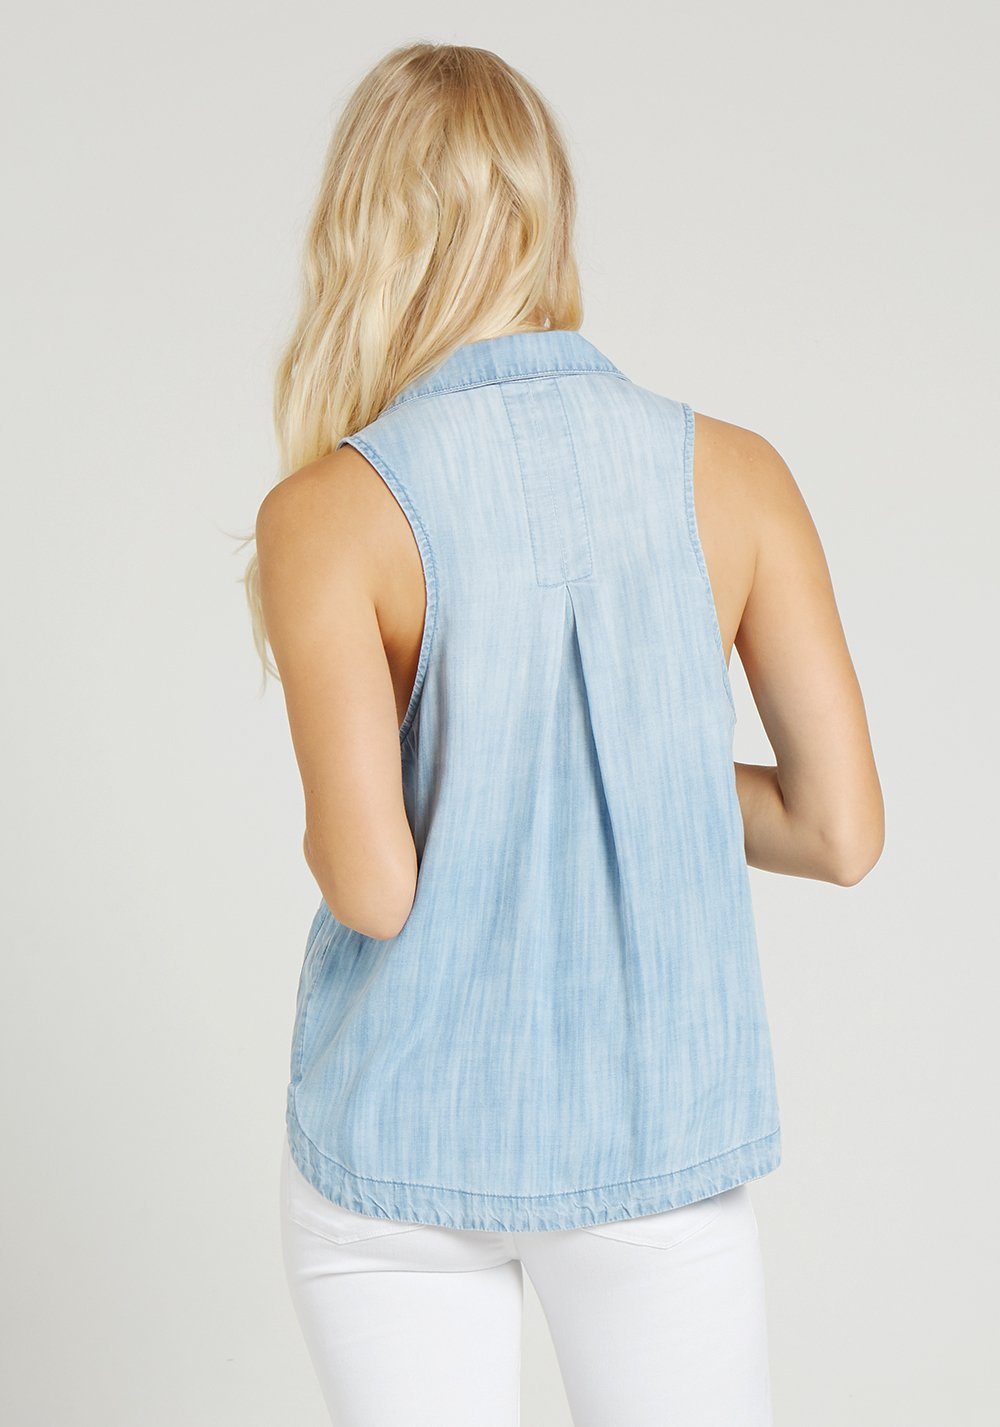 BELLA DAHL - Sleeveless Gusset Shirt online at PAYA boutique